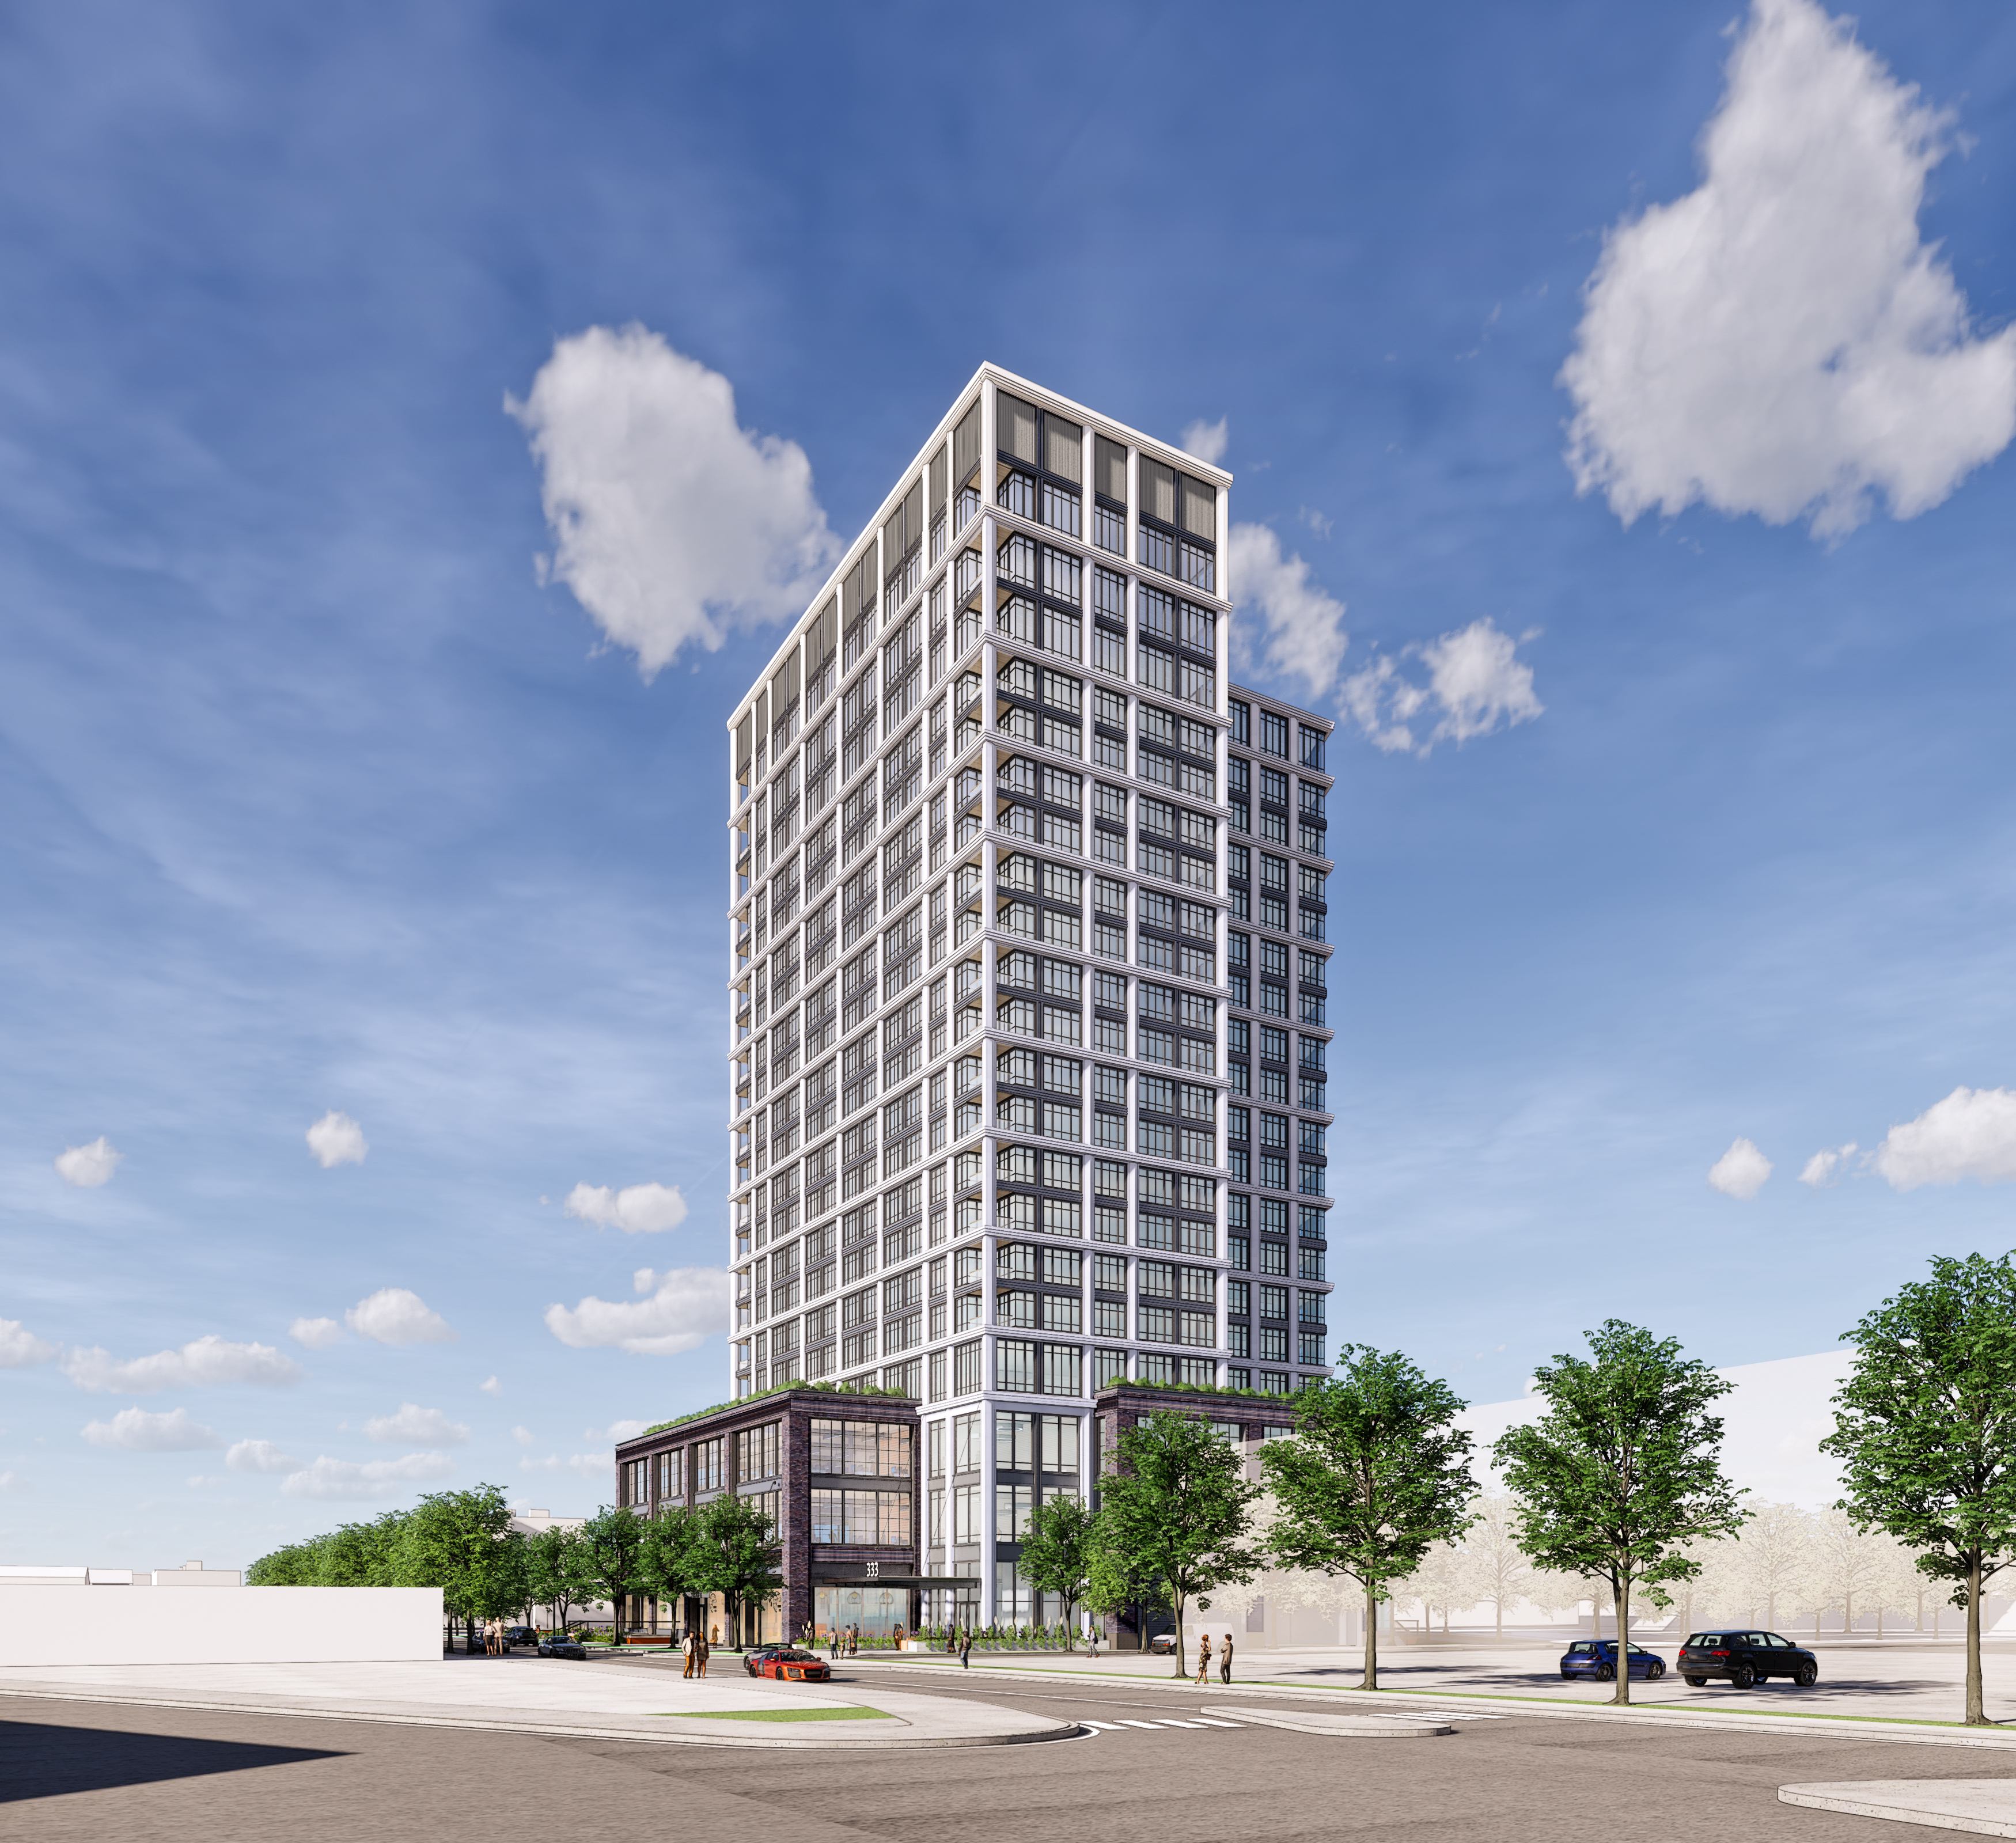 National Development Files Plans for 21-Story Tower on Dorchester Avenue in South Boston